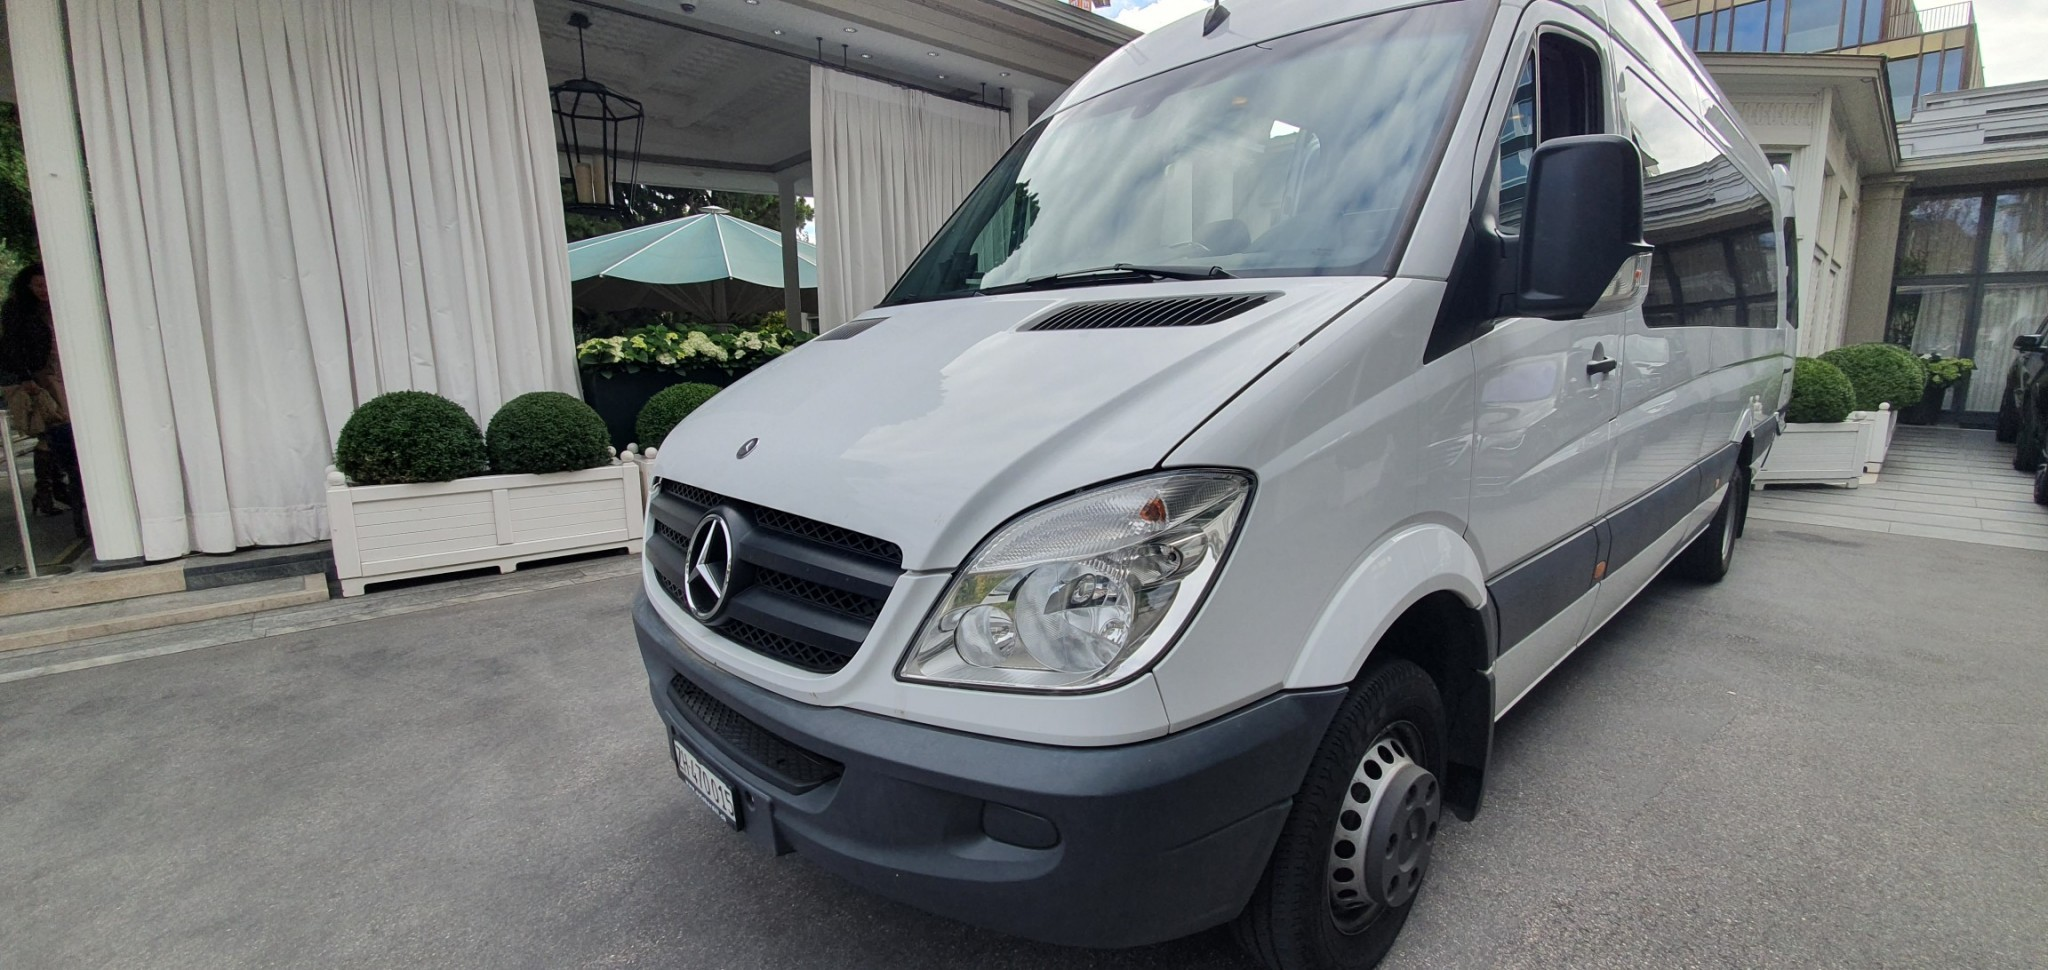 bus Mercedes-Benz Sprinter Mercedes Benz Sprinter 516, Passagier, 16+1 sitzen.